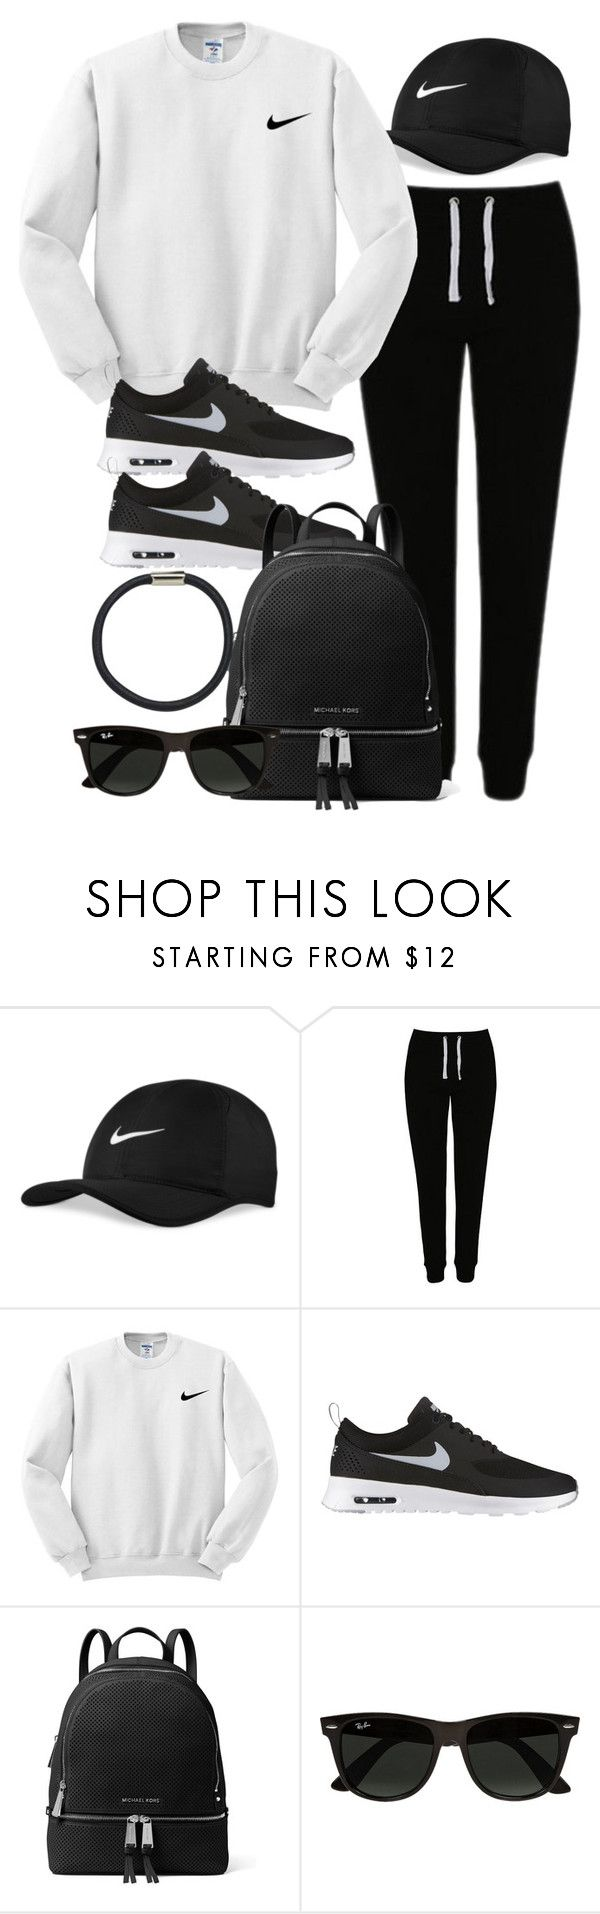 """""""Sin título #12072"""" by vany-alvarado ❤ liked on Polyvore featuring NIKE, George, MICHAEL Michael Kors, Ray-Ban and Hershesons"""